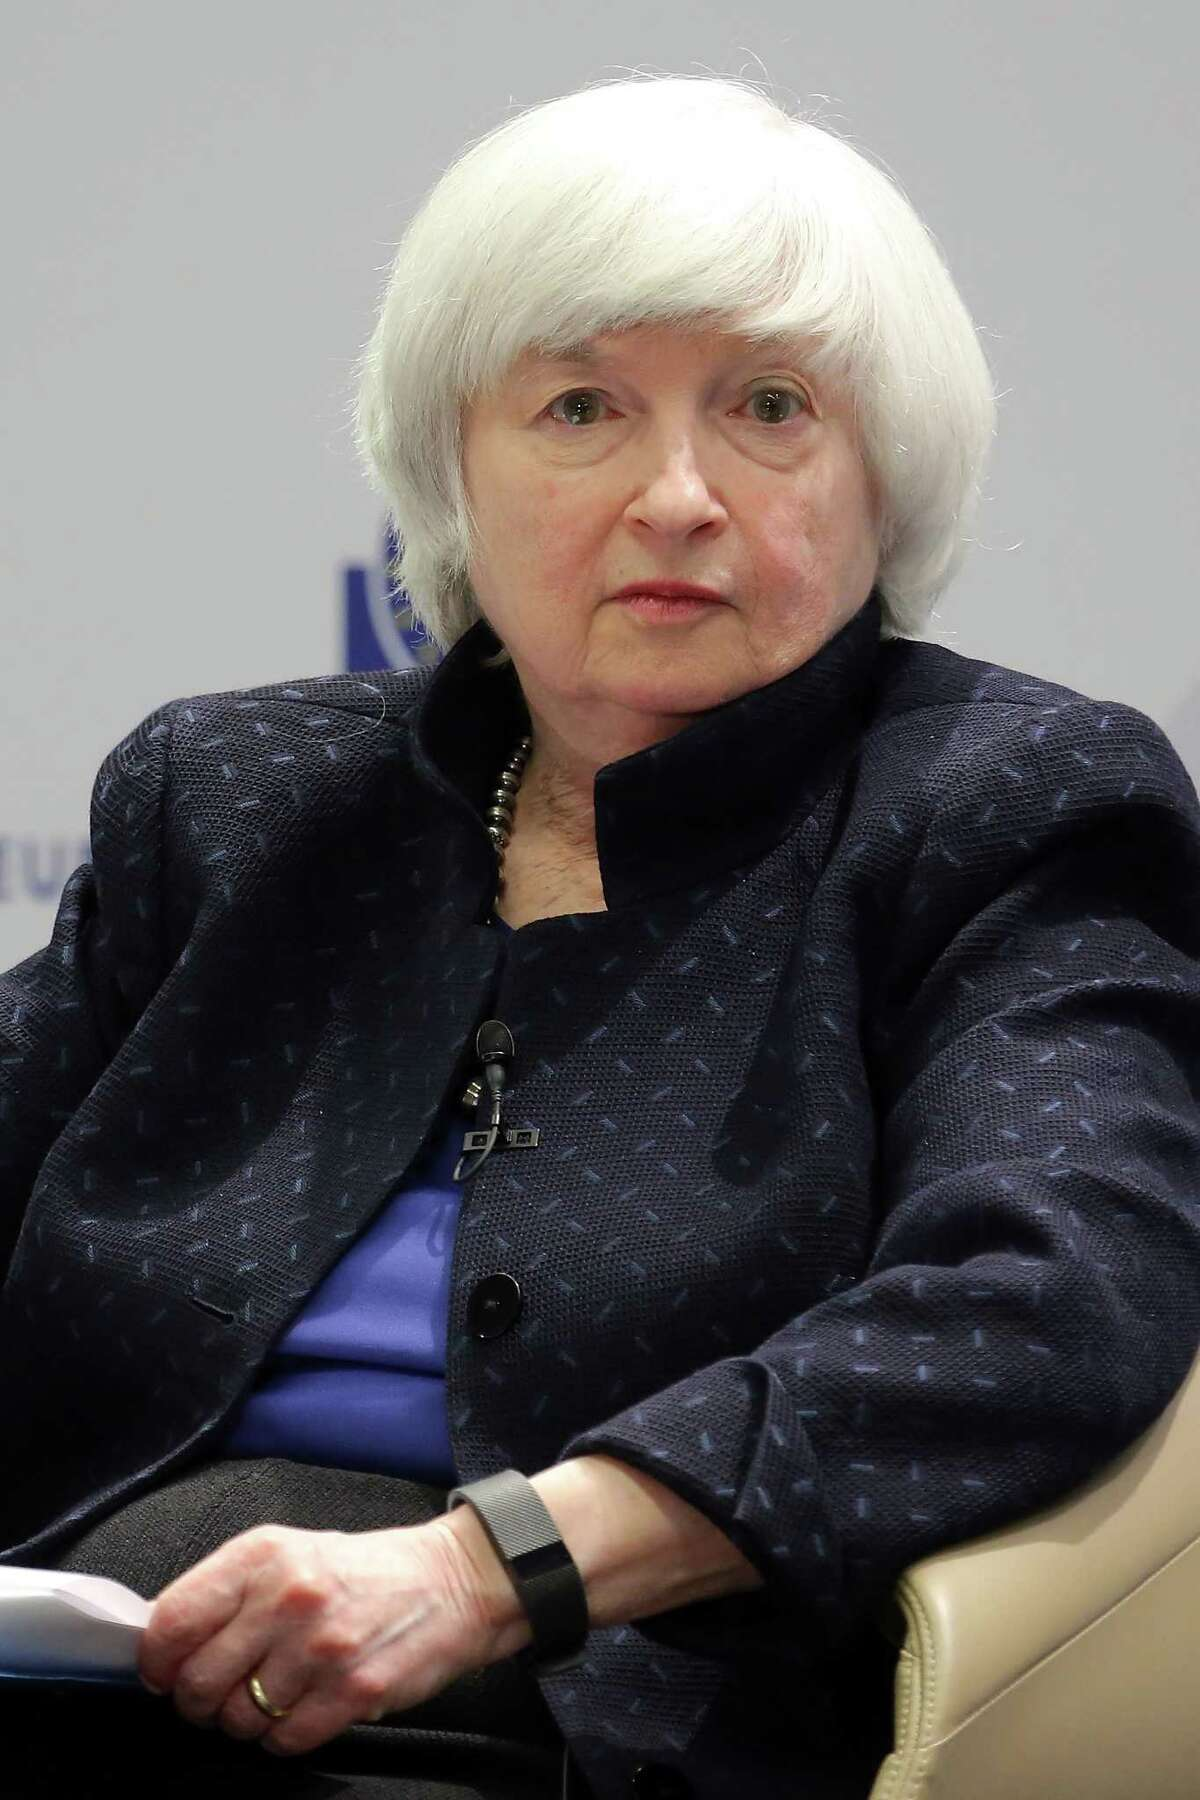 FRANKFURT AM MAIN, GERMANY - NOVEMBER 14: Janet Yellen, Chair of the Federal Reserve, in a panel to discuss central bank communication on November 14, 2017 in Frankfurt, Germany. The event, which is taking place at European Central Bank headquarters, is part of a two-day conference on central bank communication. (Photo by Hannelore Foerster/Getty Images)